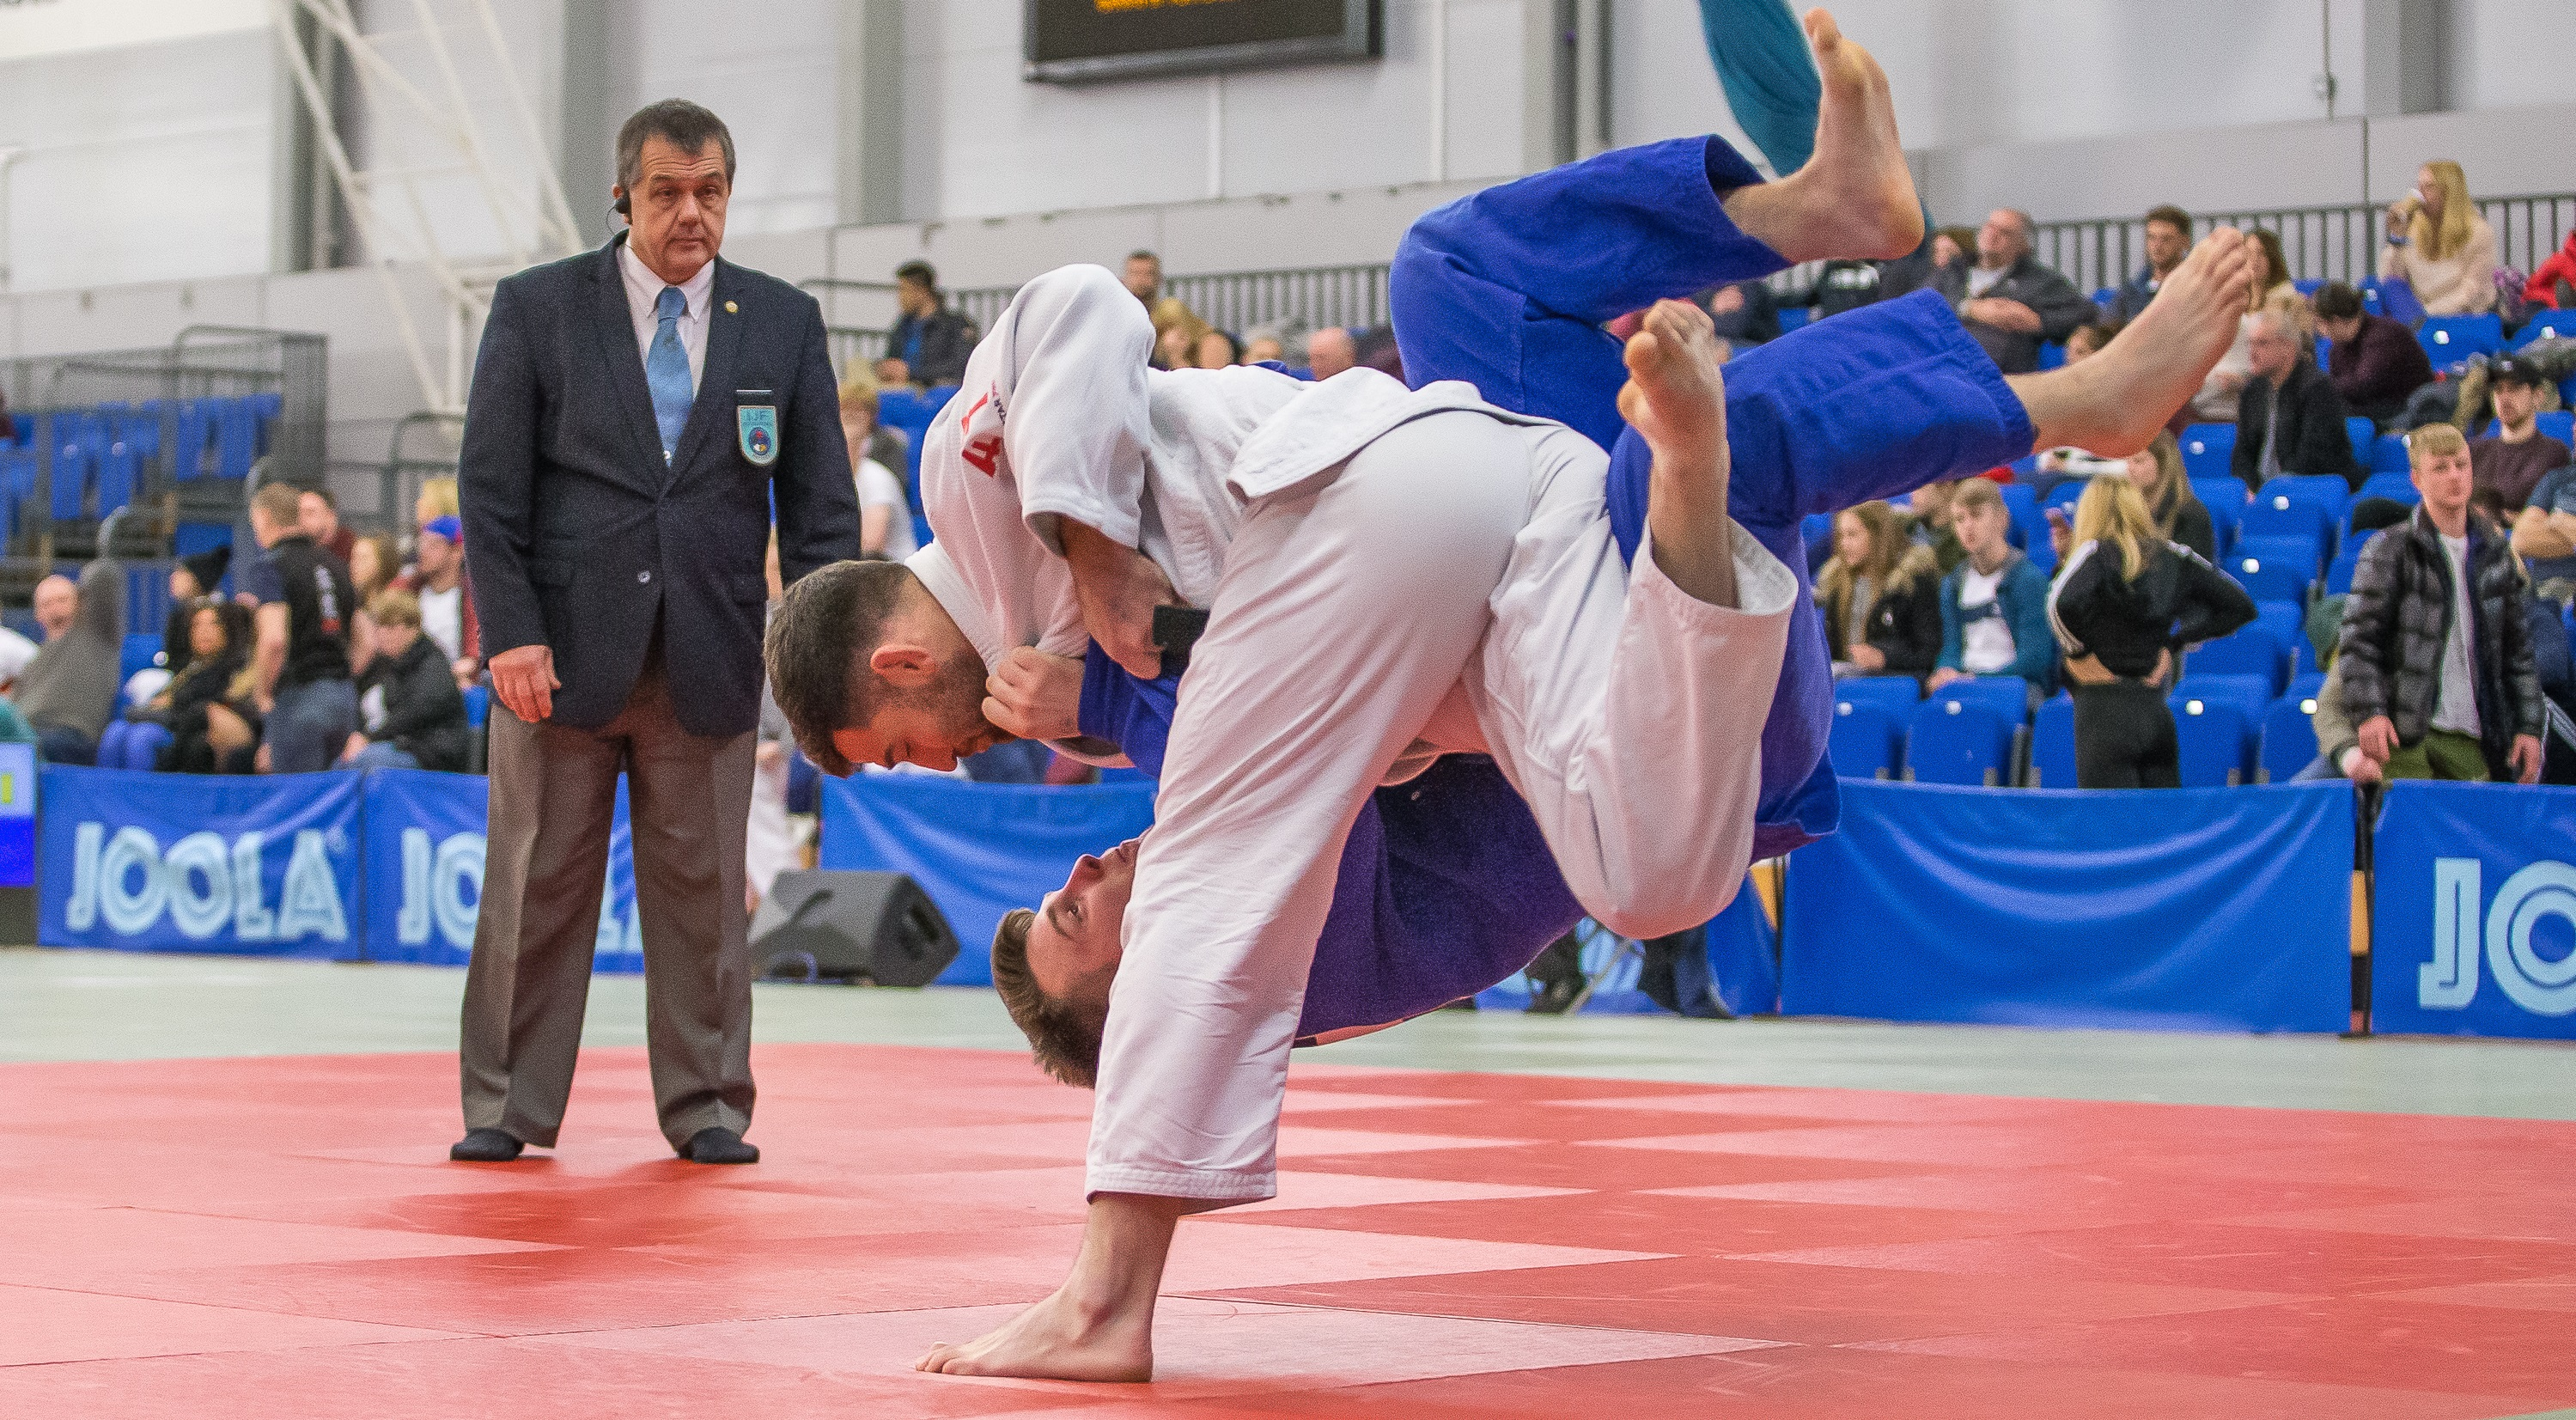 2018 IJF Contest Rule Changes Take Effect Today - British Judo